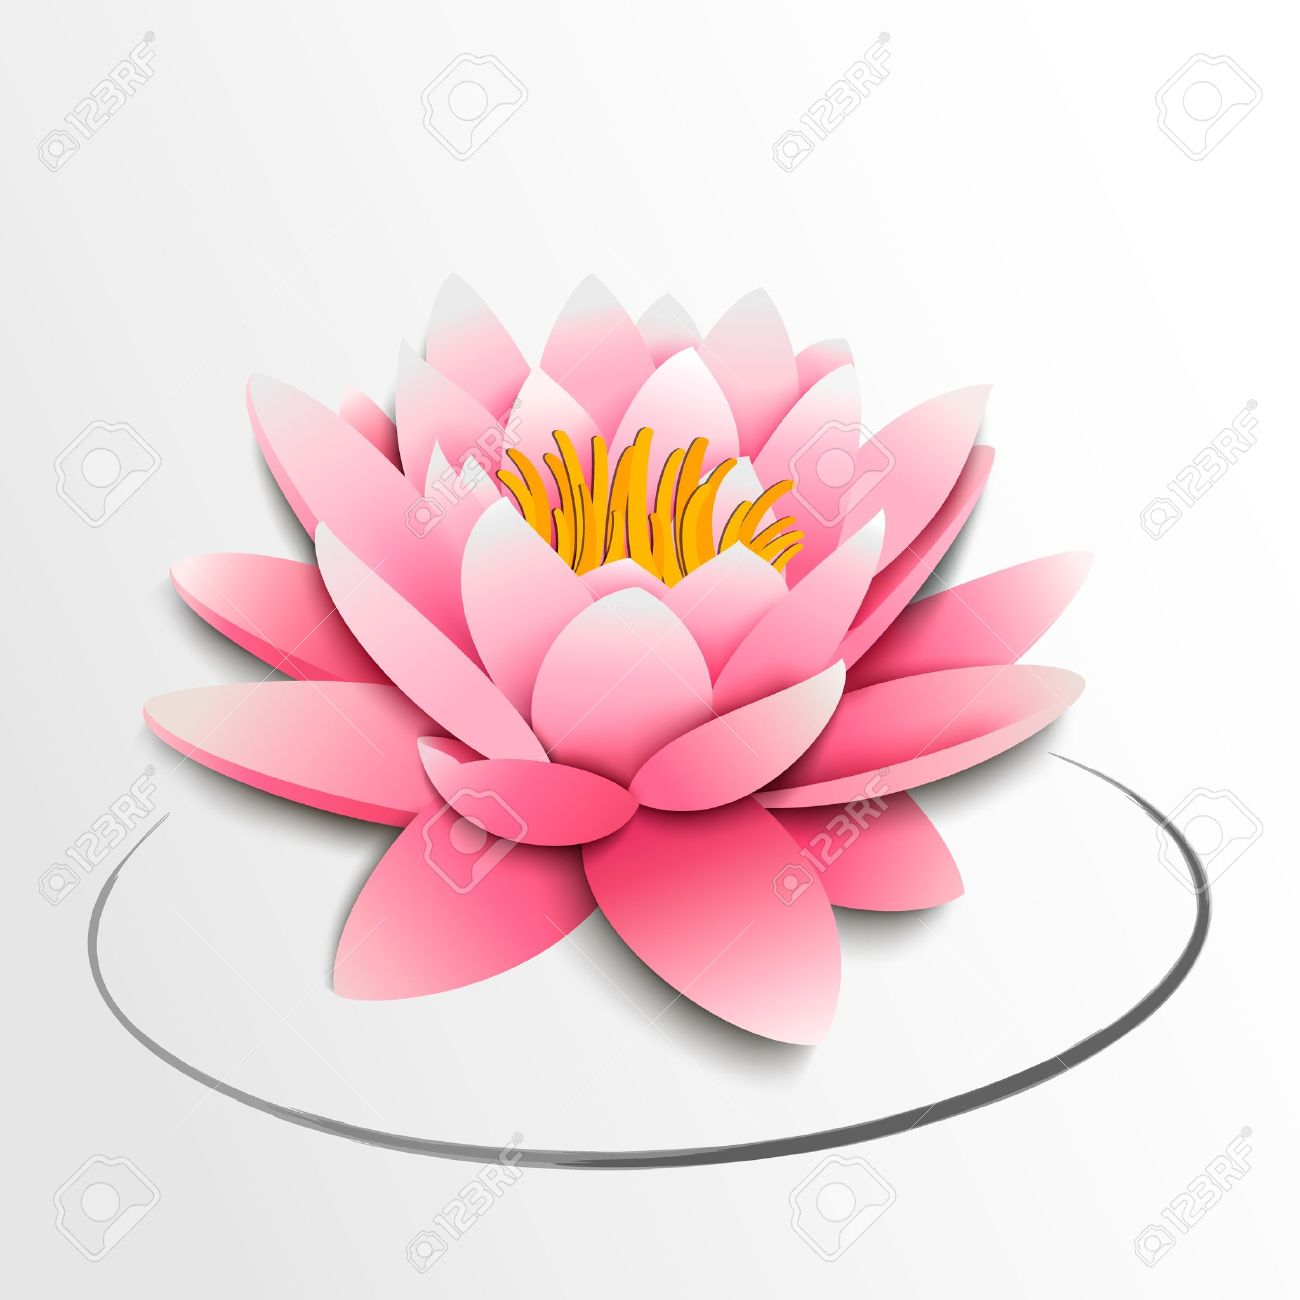 Lotus Flower Images Clipart - Floral delivery